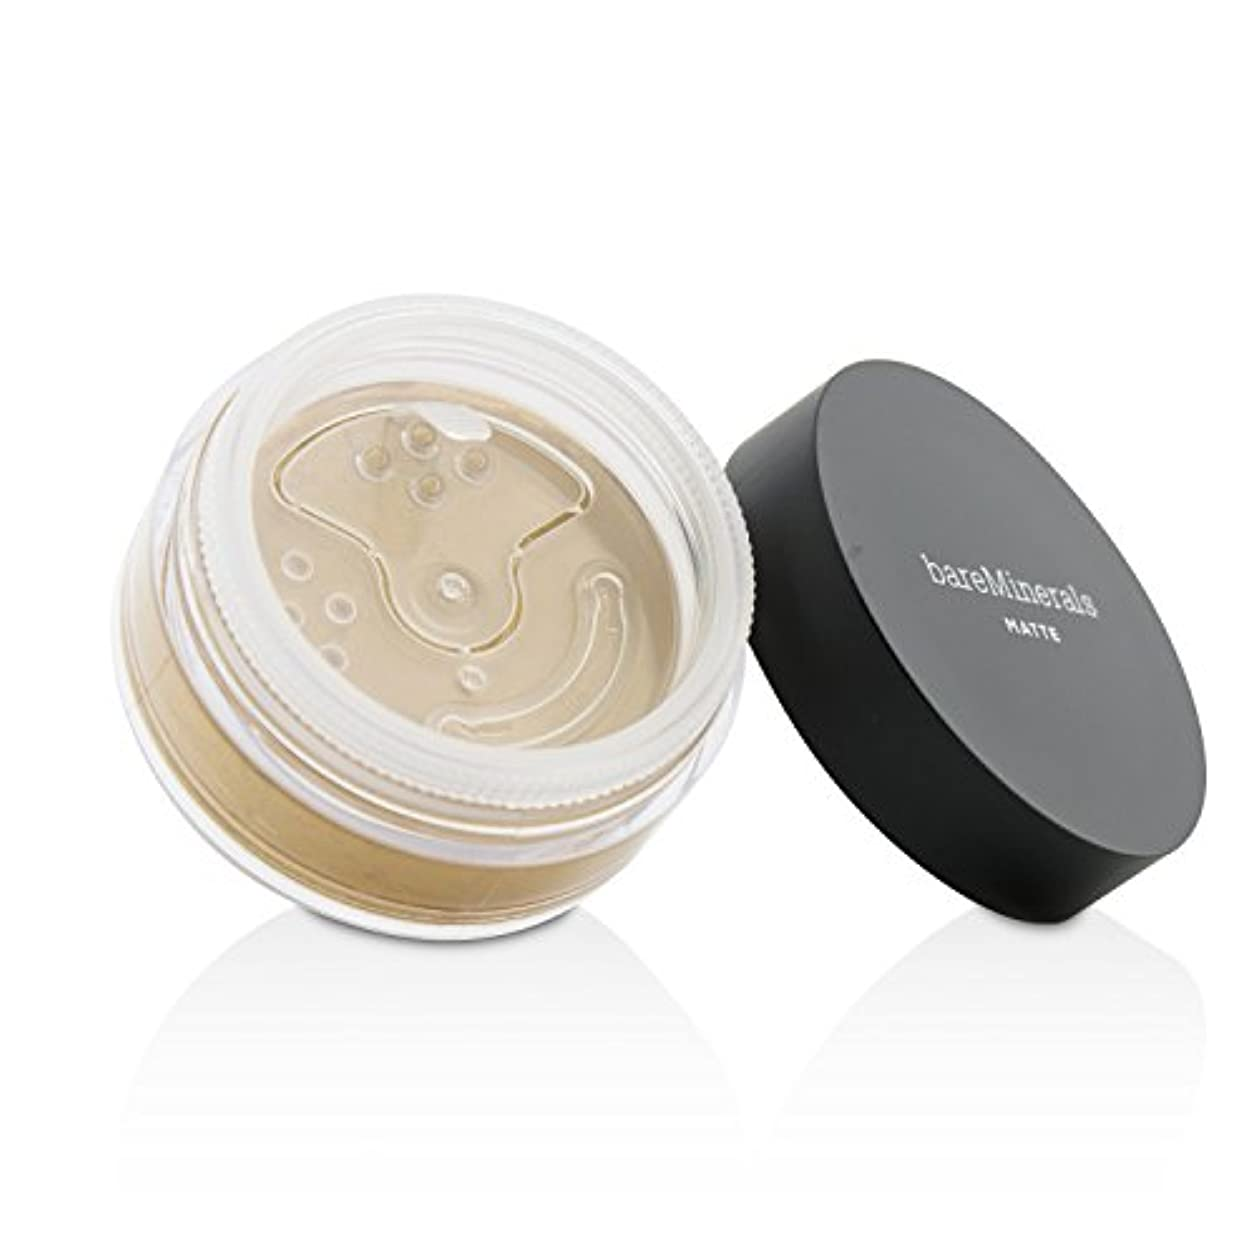 ええ心理的巧みなベアミネラル BareMinerals Matte Foundation Broad Spectrum SPF15 - Tan Nude 6g/0.21oz並行輸入品